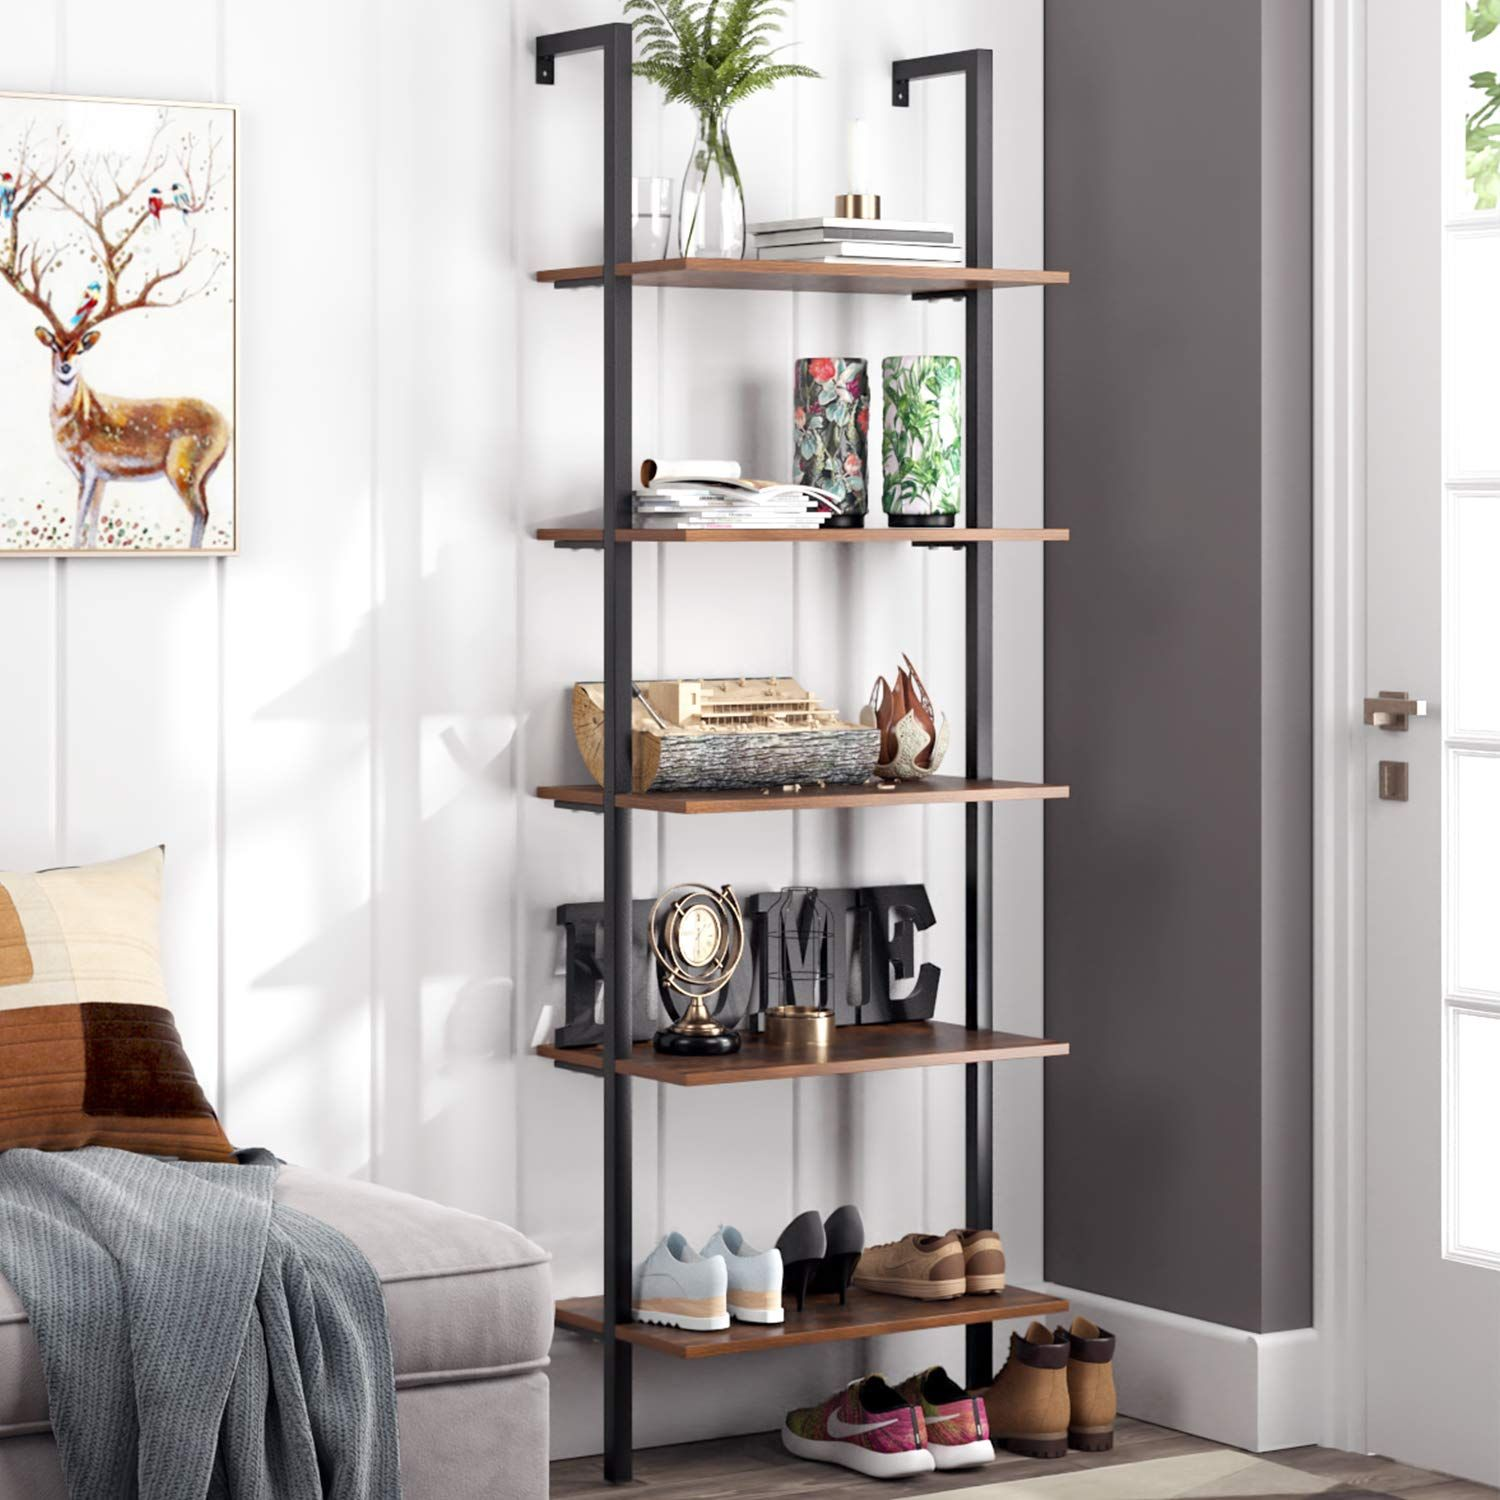 Homfa 5 Tier Industrial Ladder Shelf Against The Wall To View